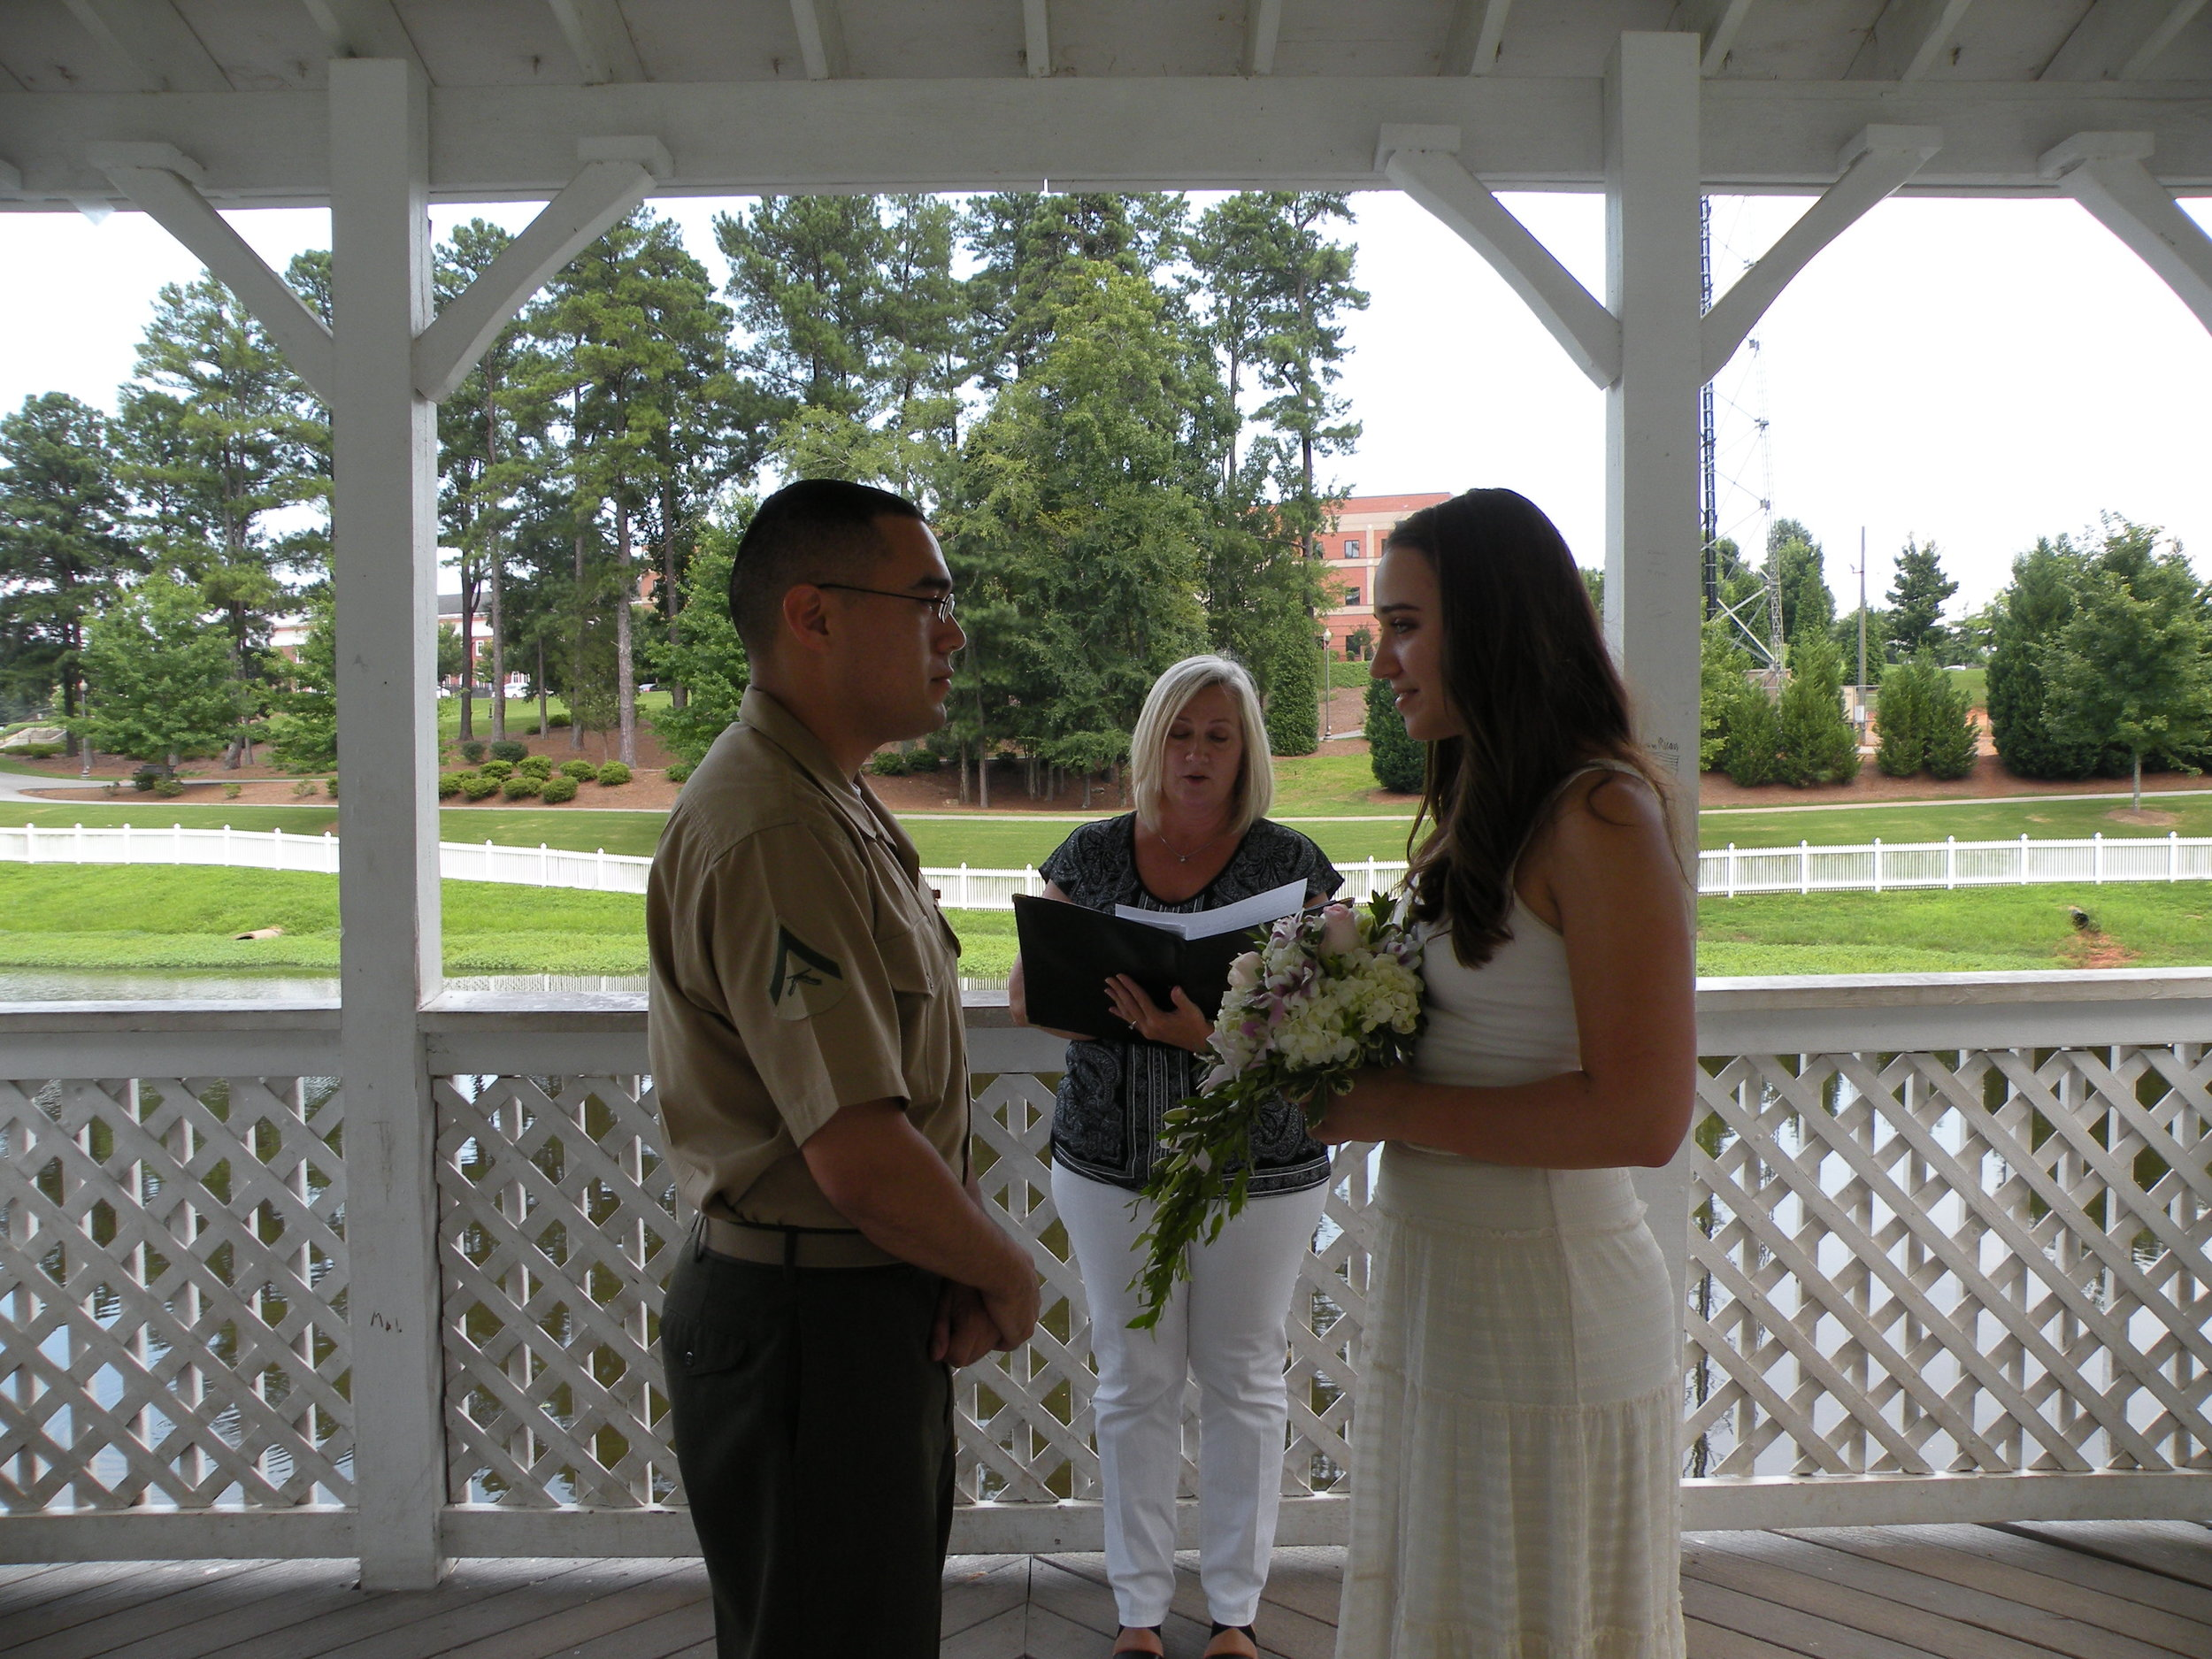 26 July 2013, Columbia County Courthouse. Saying our vows.